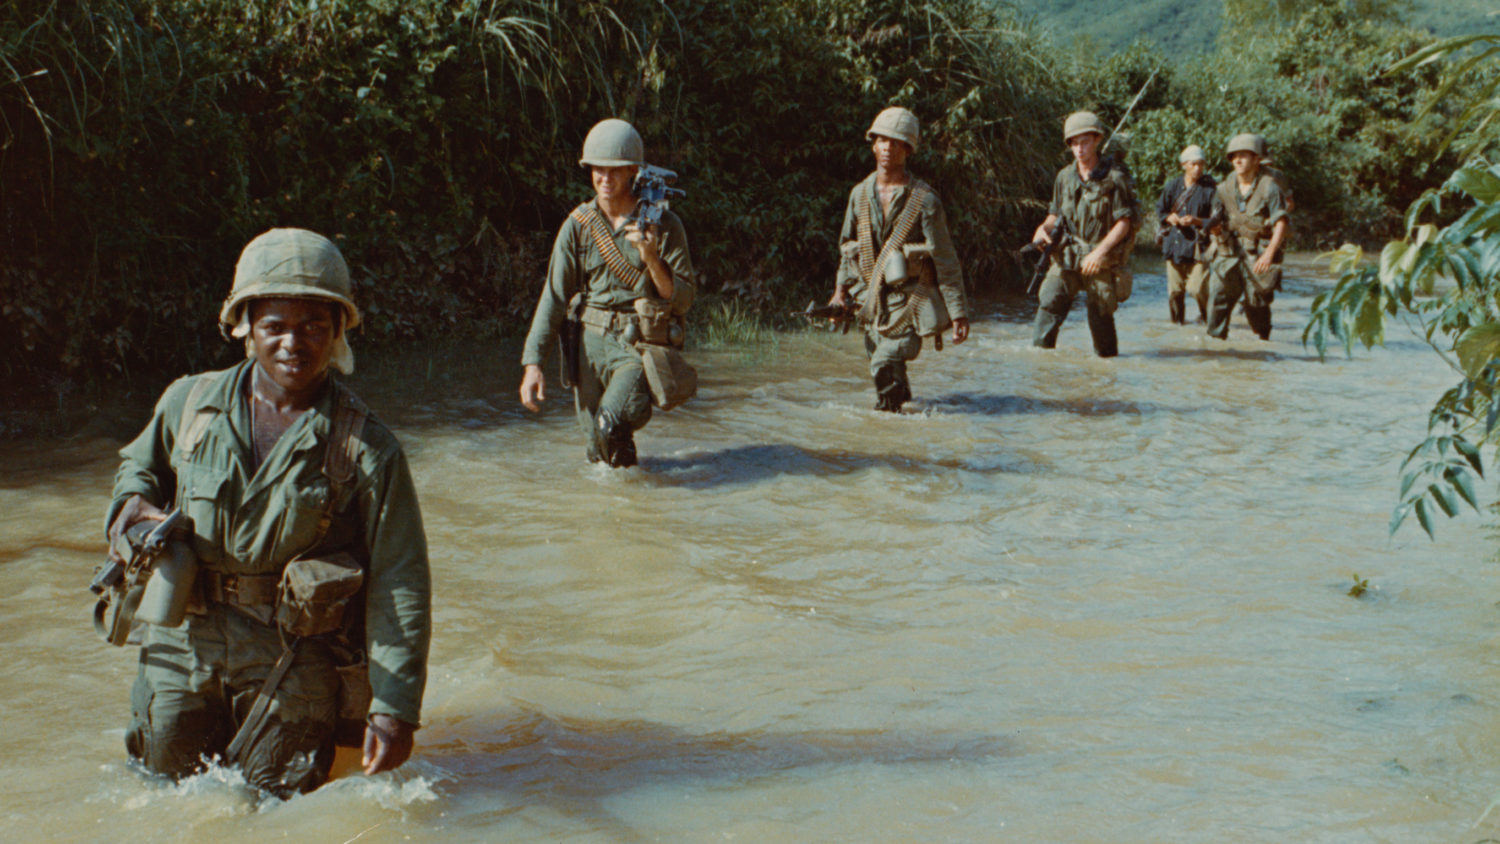 In 'Vietnam War,' Ken Burns Wrestles With The Conflict's